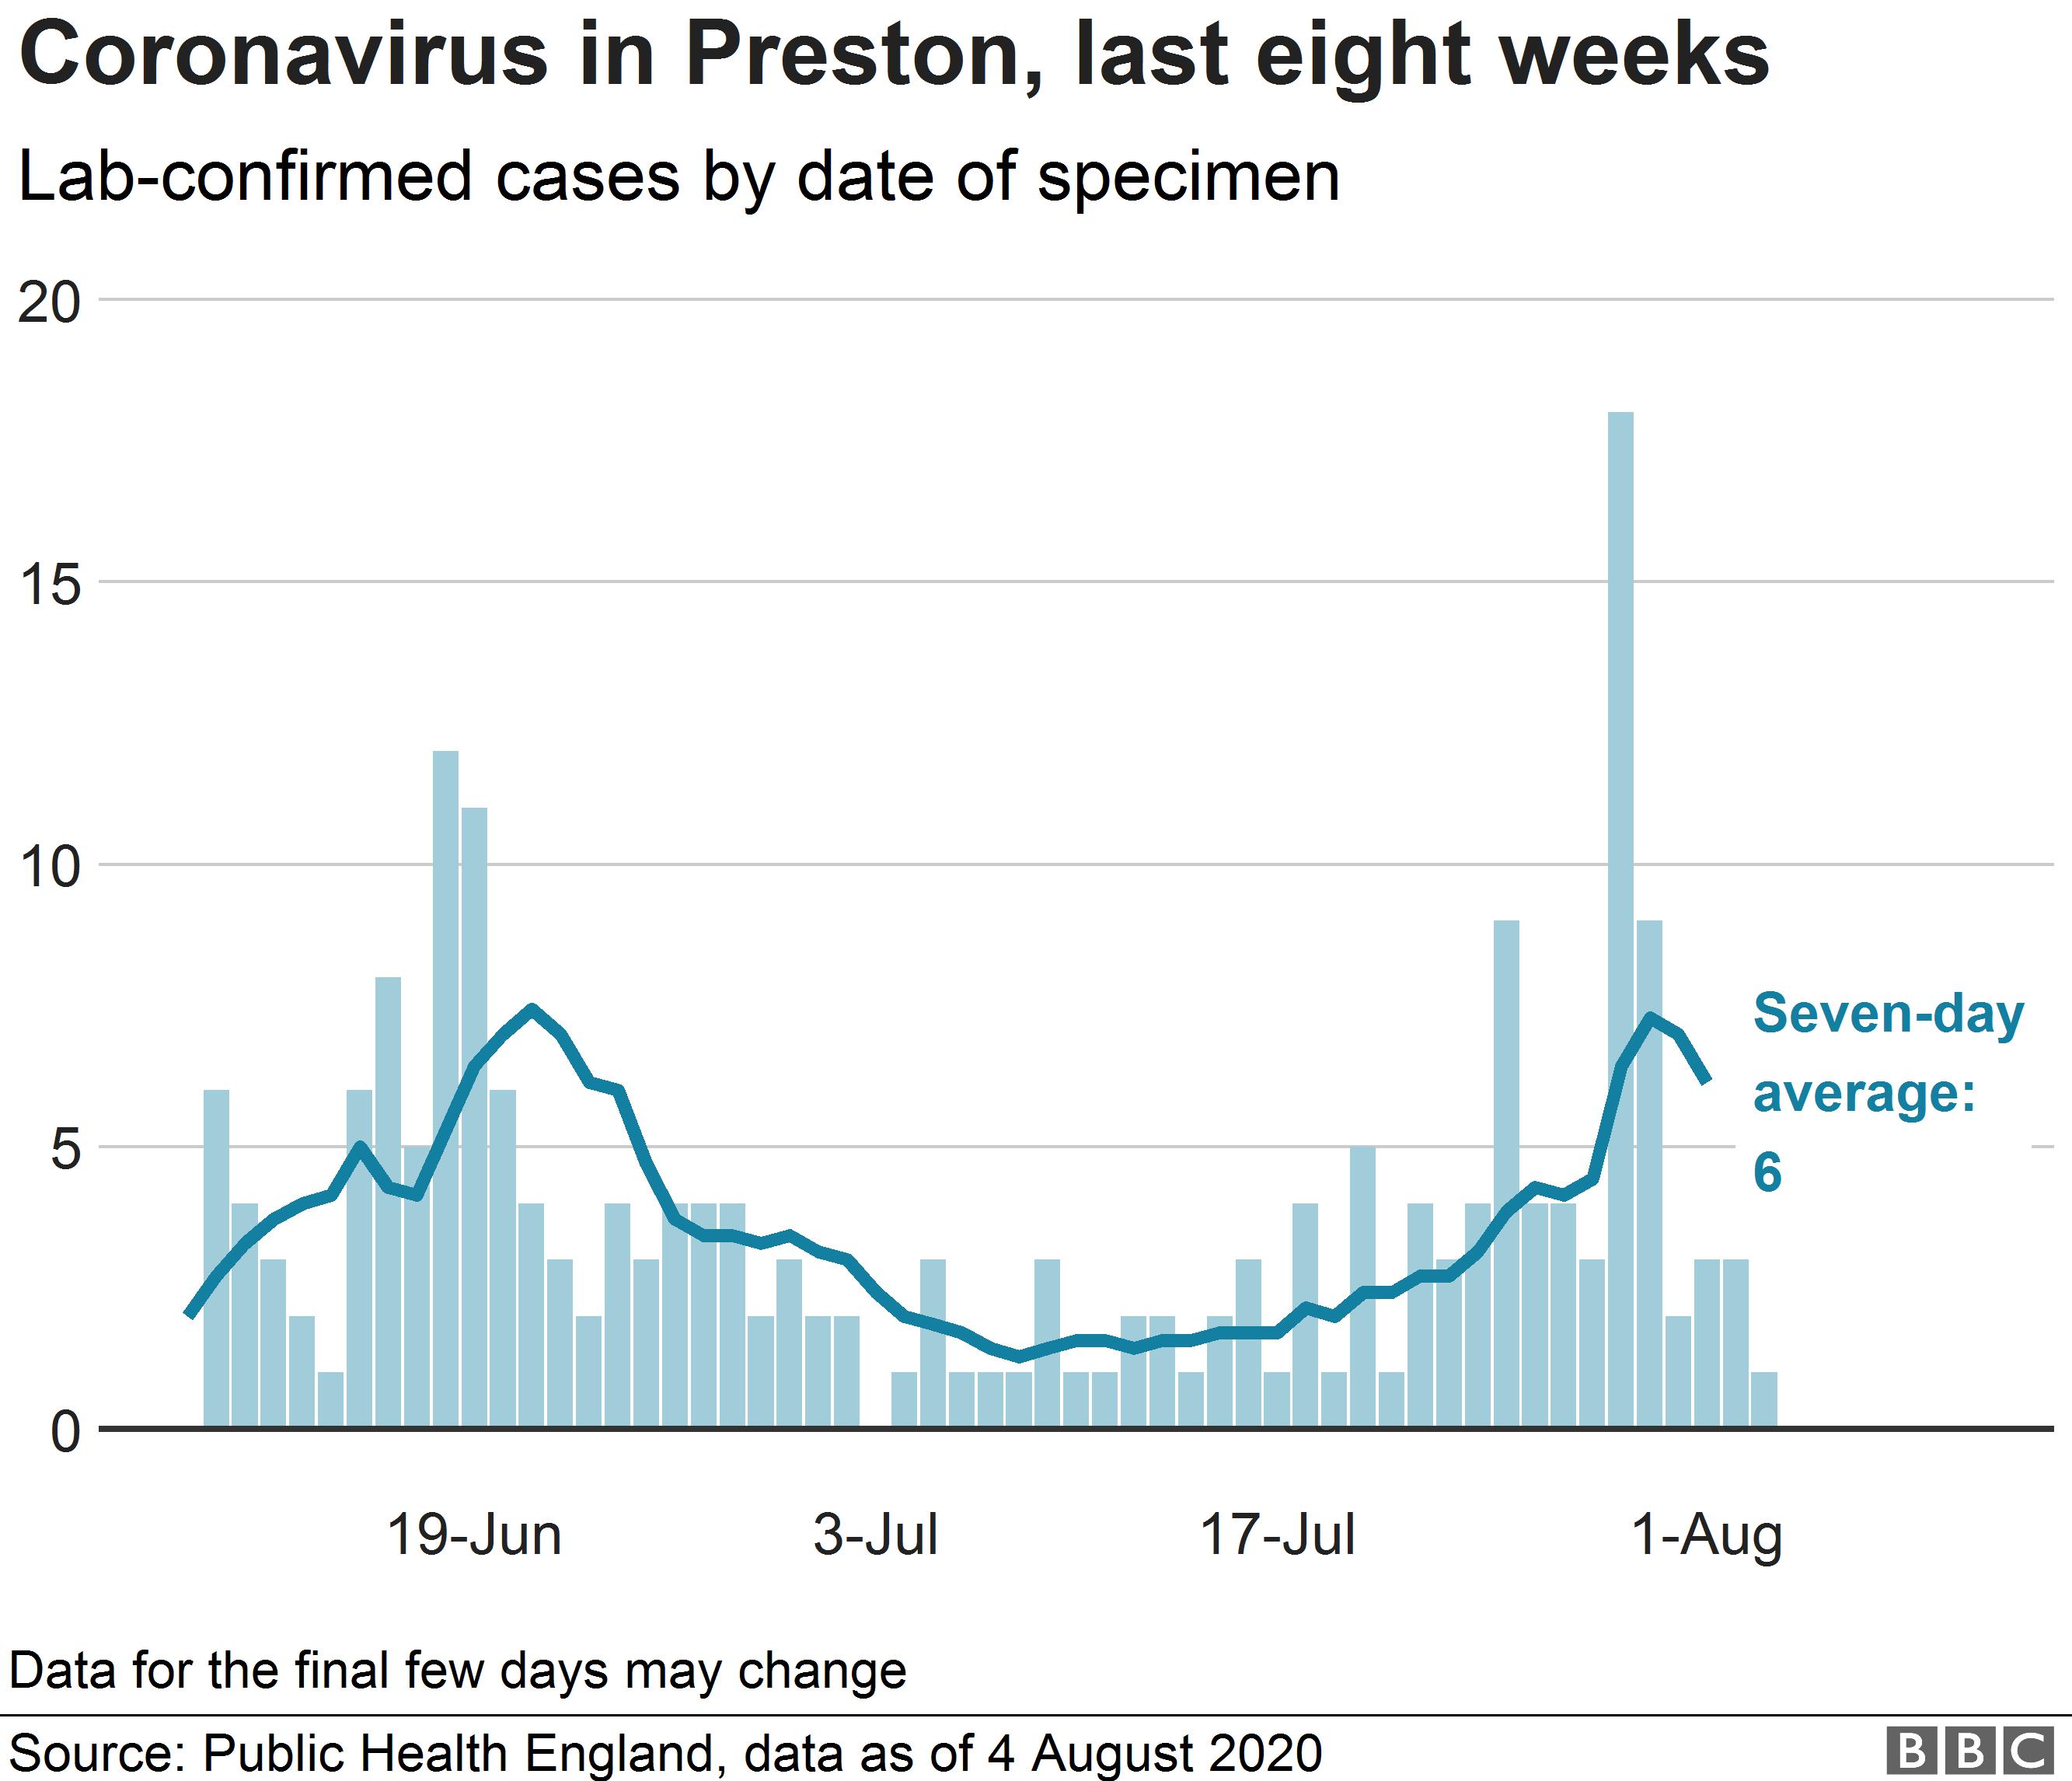 Chart showing confirmed cases in Preston